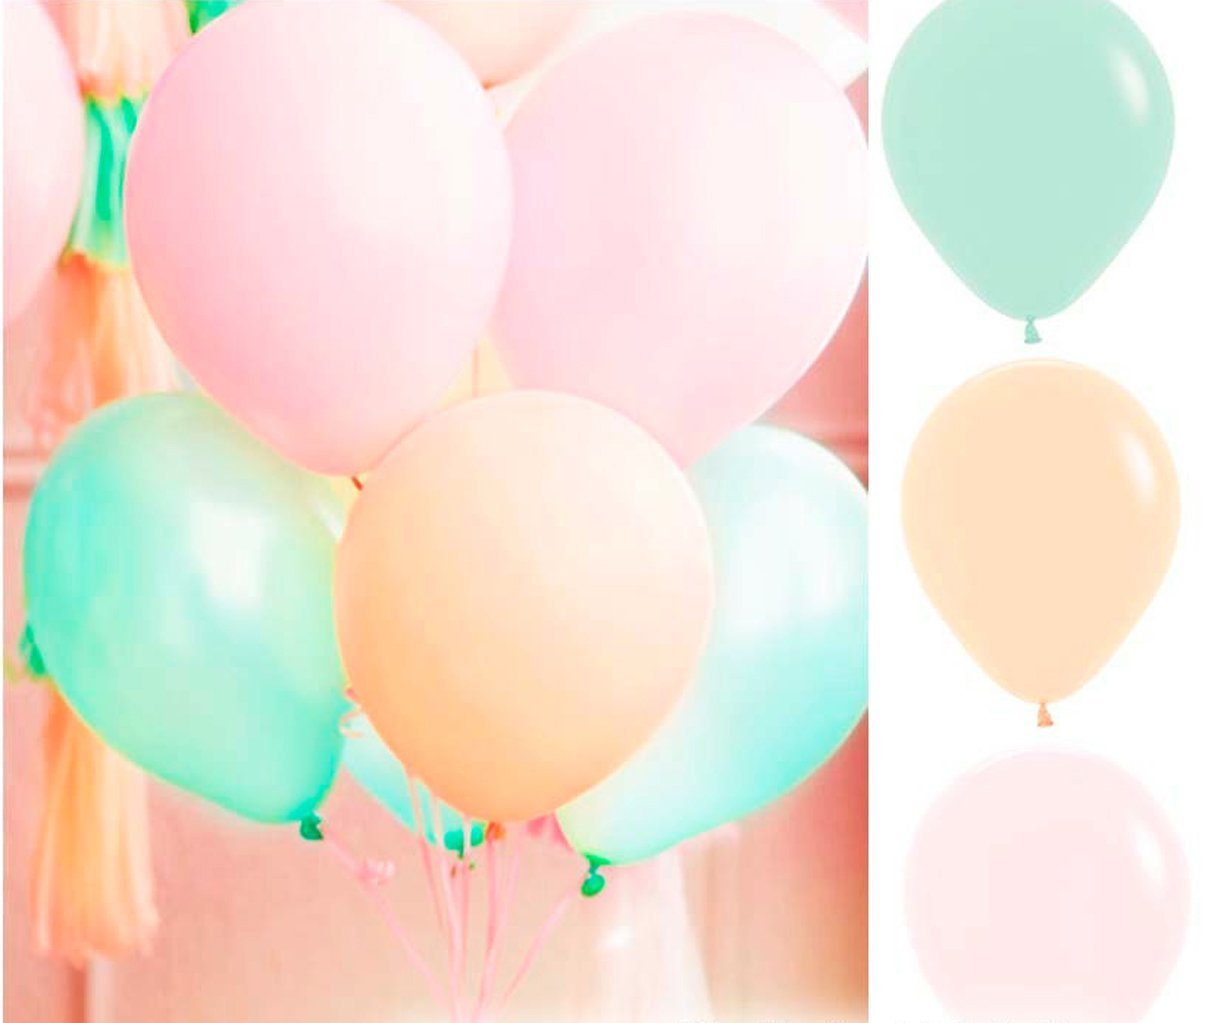 60 Ct Mixed 10'' Pastel Peach Pink Mint Green Latex Balloon Wedding Birthday Christening Girl Baby Shower Party Decoration